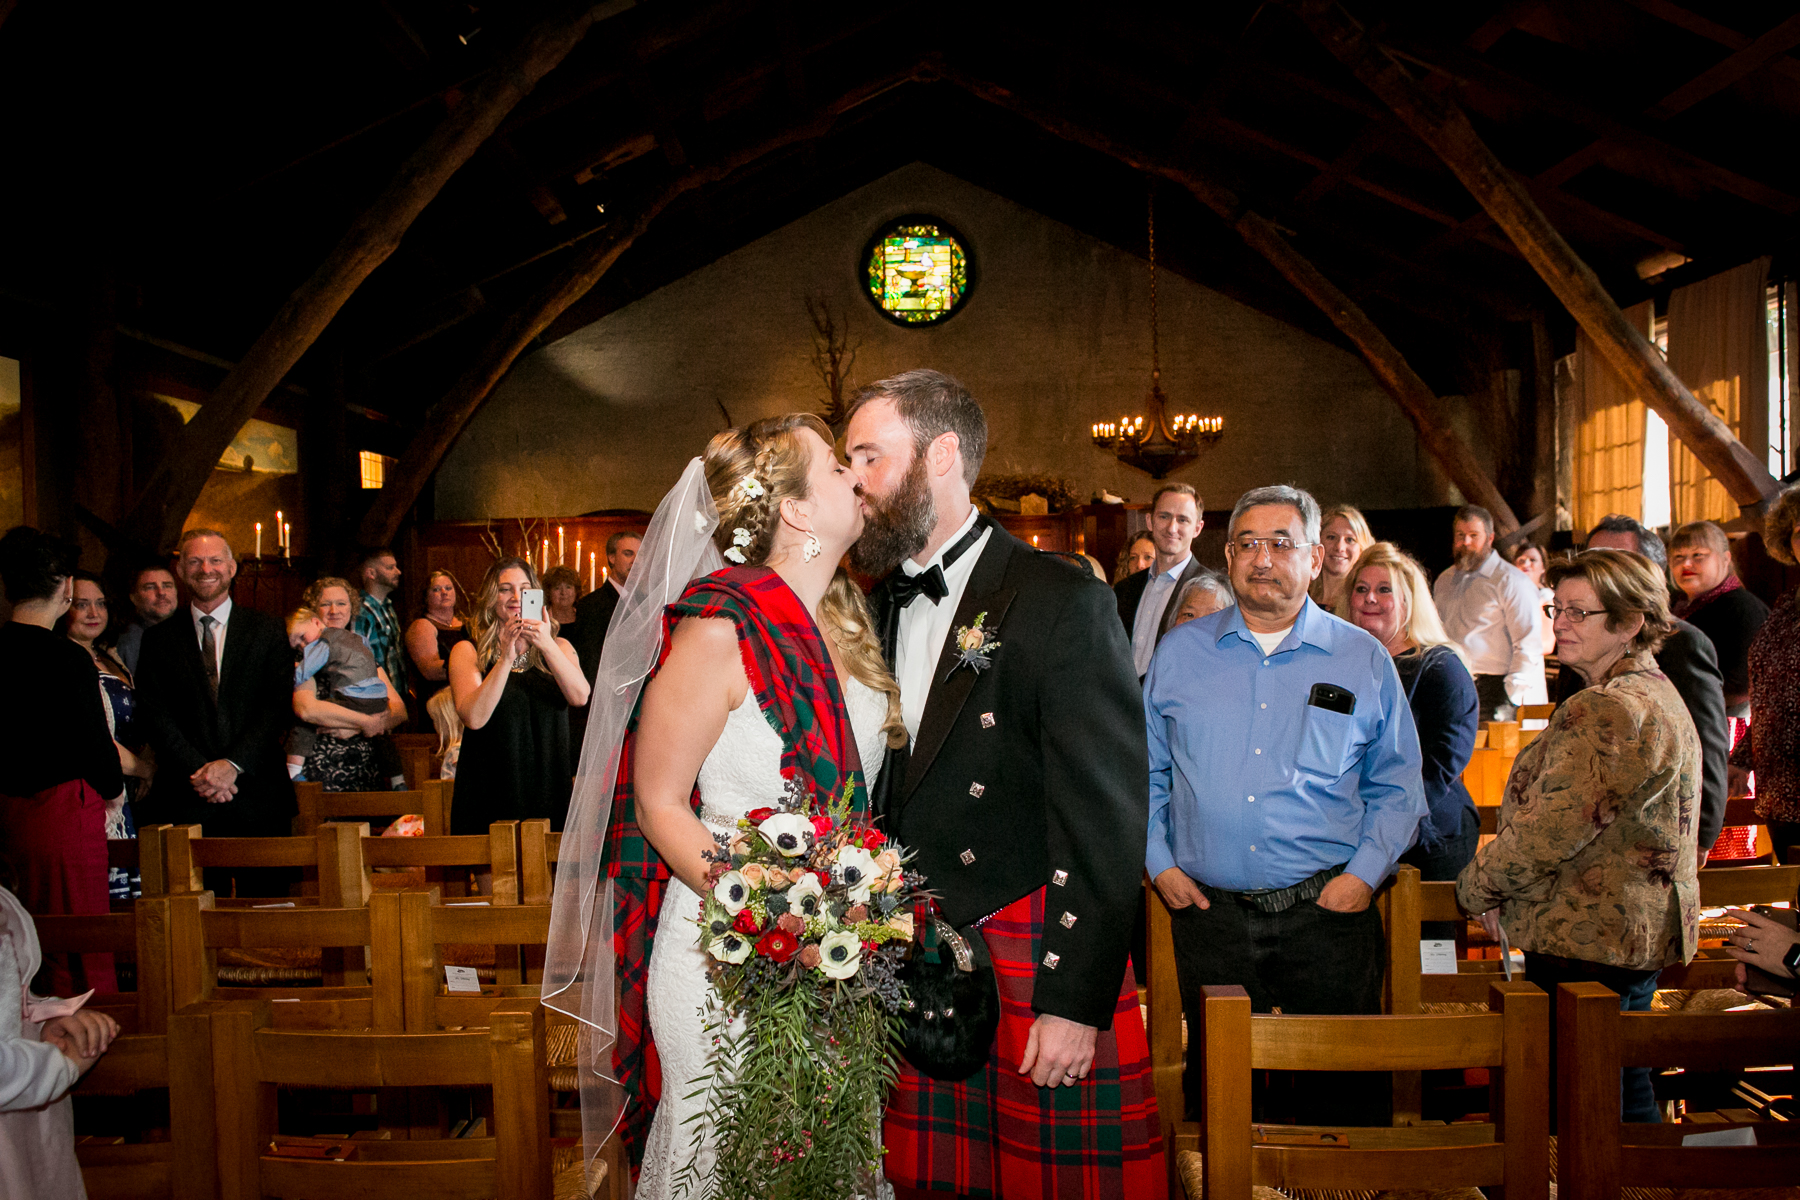 bride and groom kiss at end of wedding recessional at bay area wedding photos